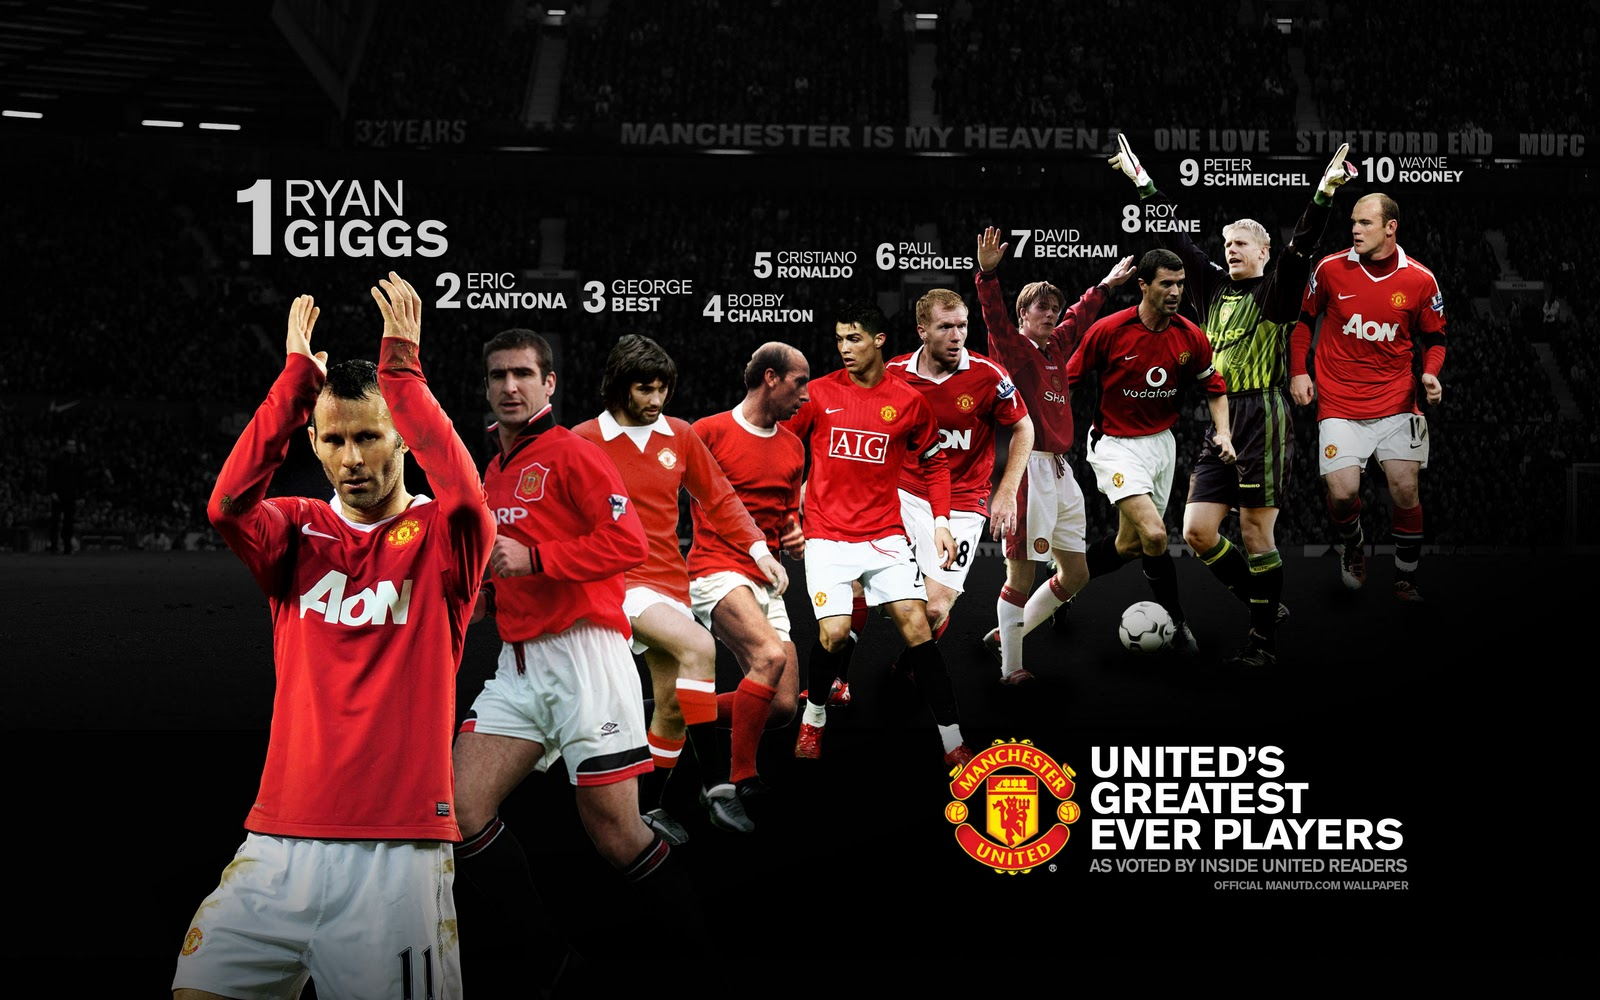 Manchester United Greatest Players Wallpapers